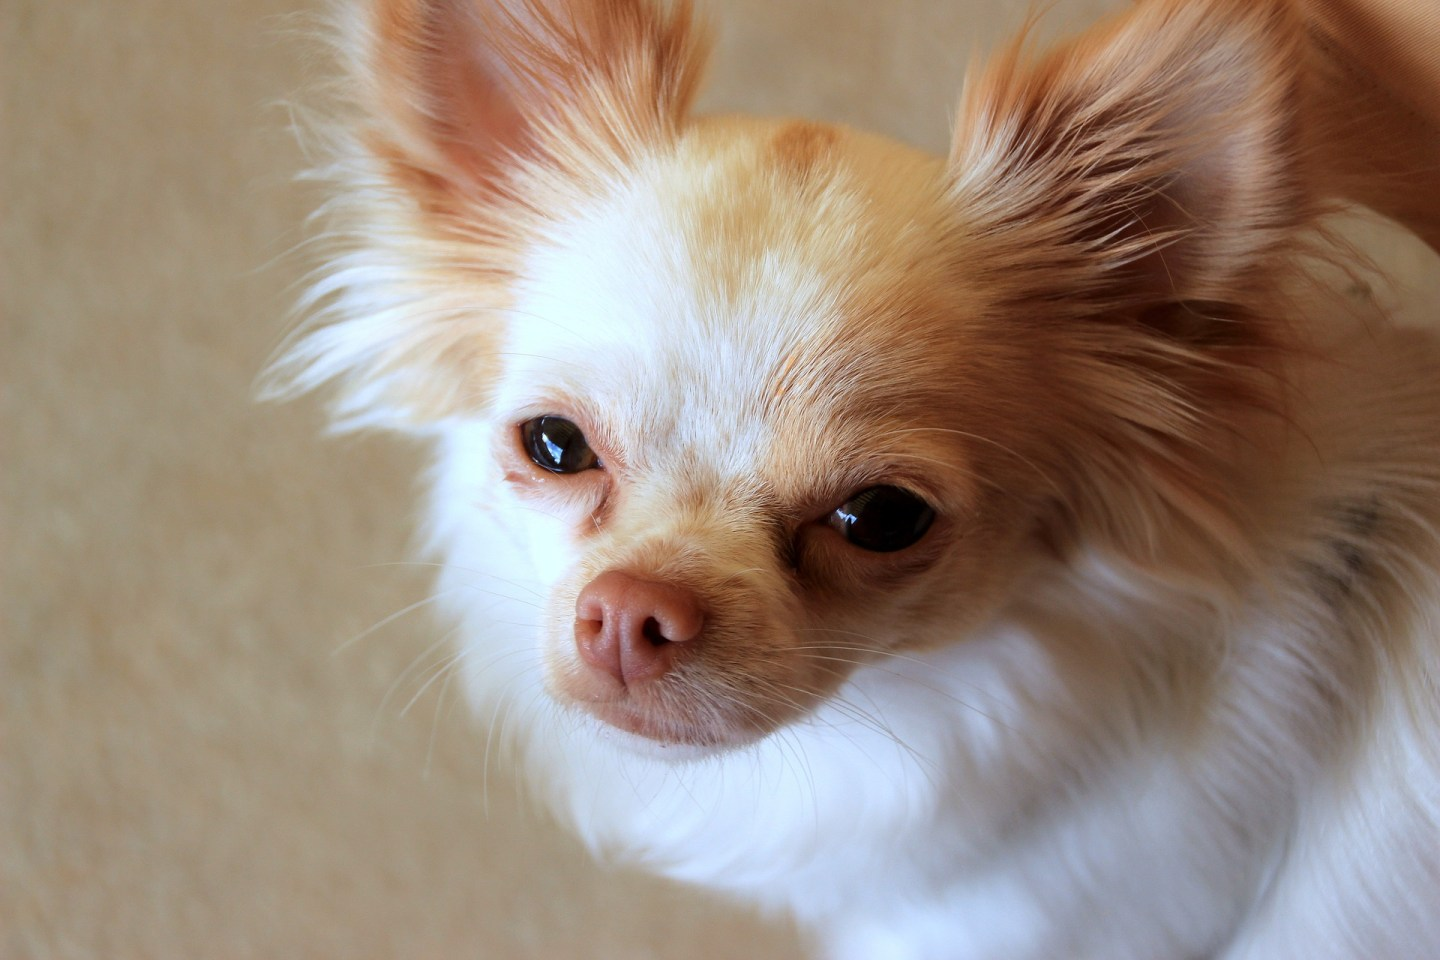 Why does my chihuahua drag his bottom across the floor?